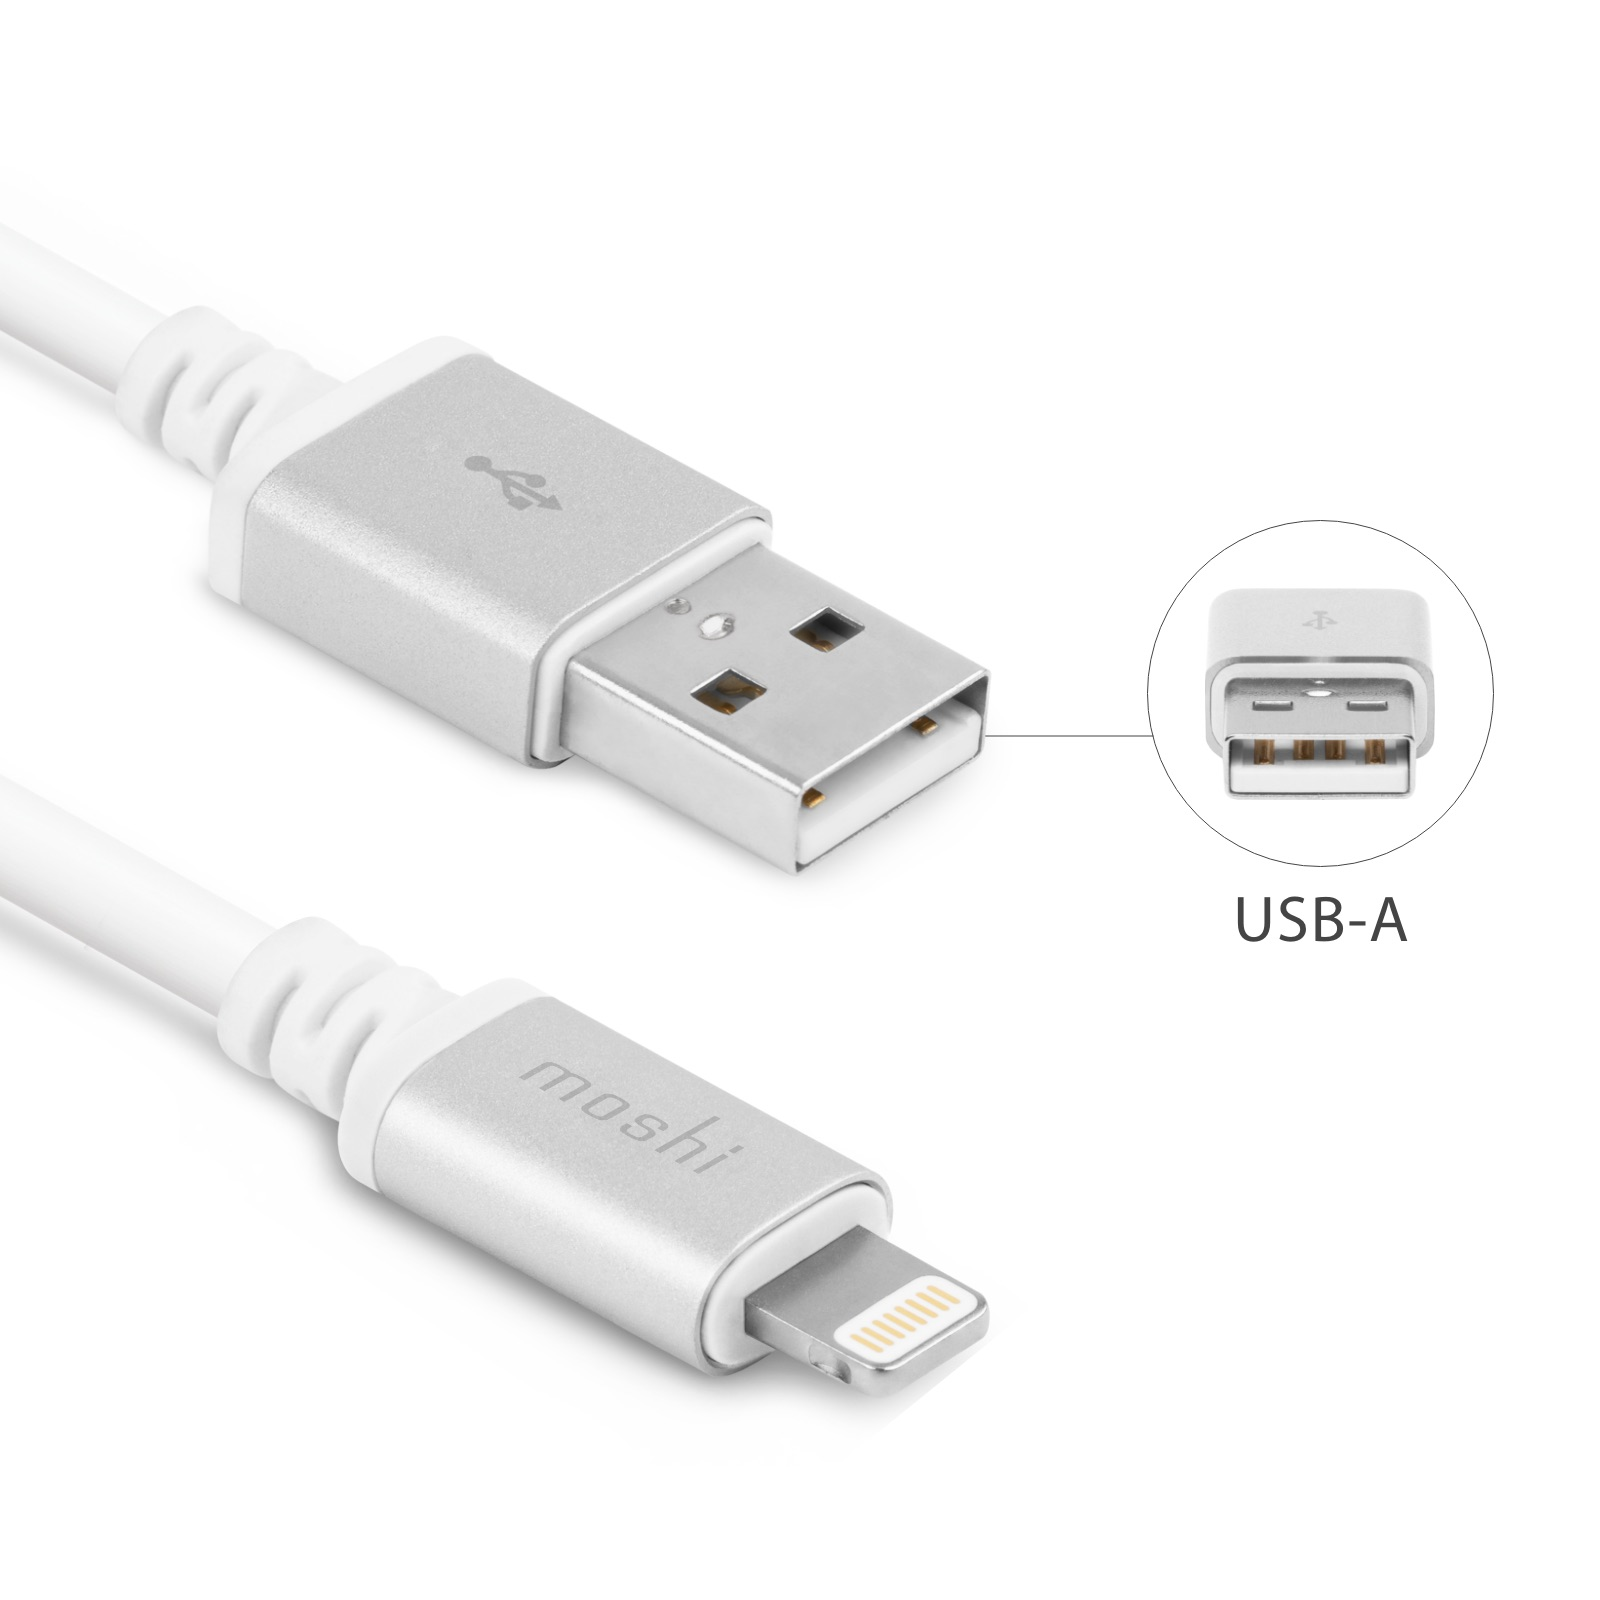 10 Foot Usb Cable With Lightning Connector 3 M White